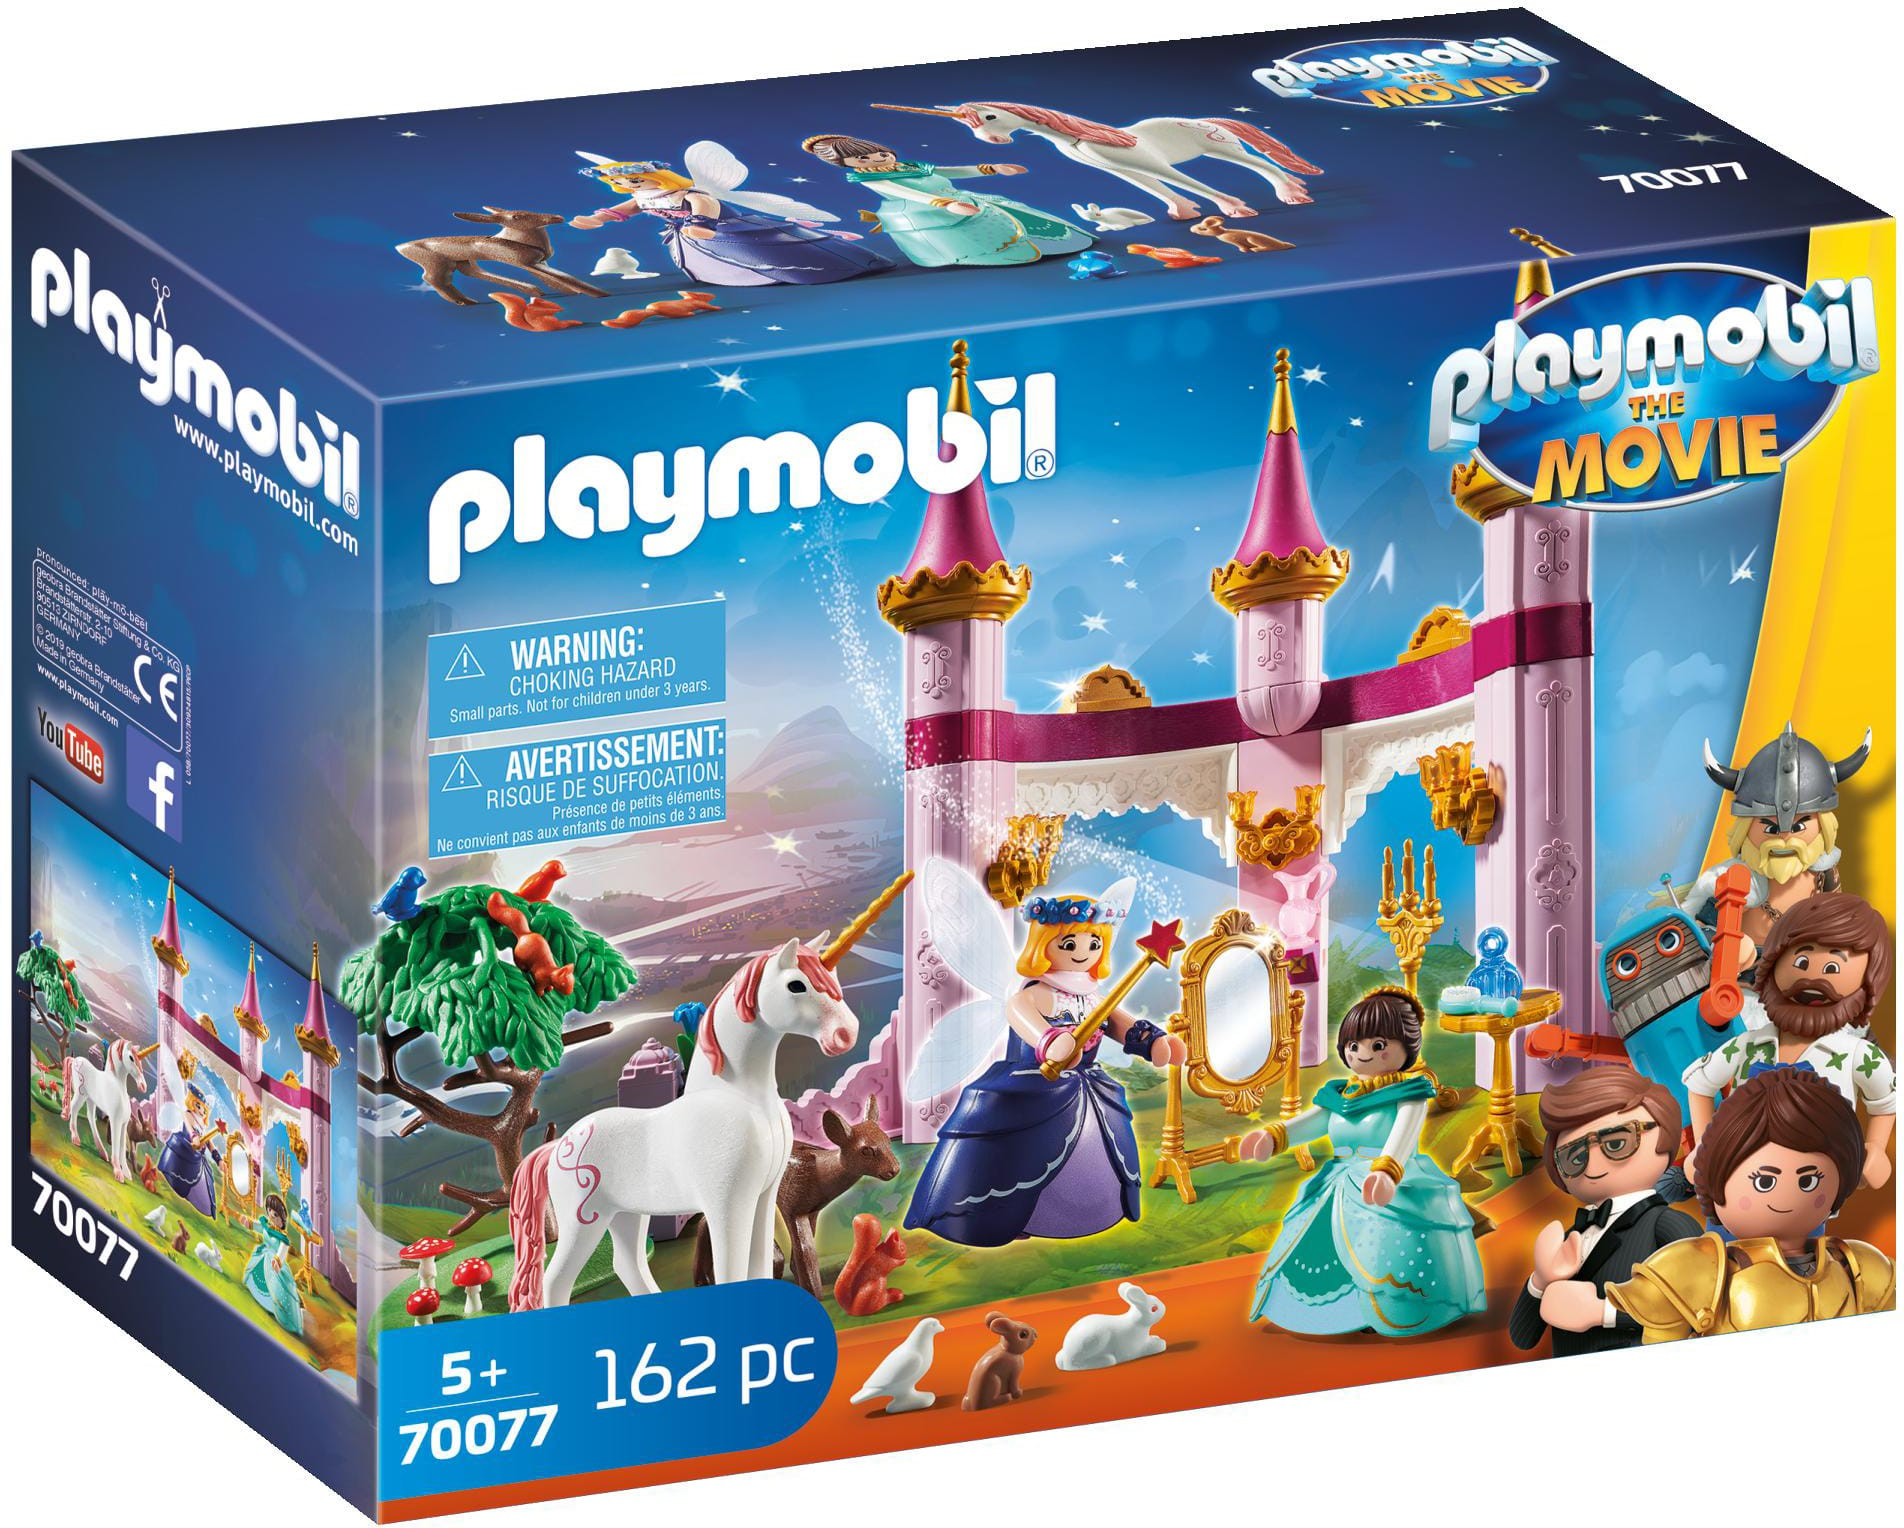 162-Pc PLAYMOBIL The Movie: Marla in The Fairytale Castle Set $15 + Free Shipping w/ Prime